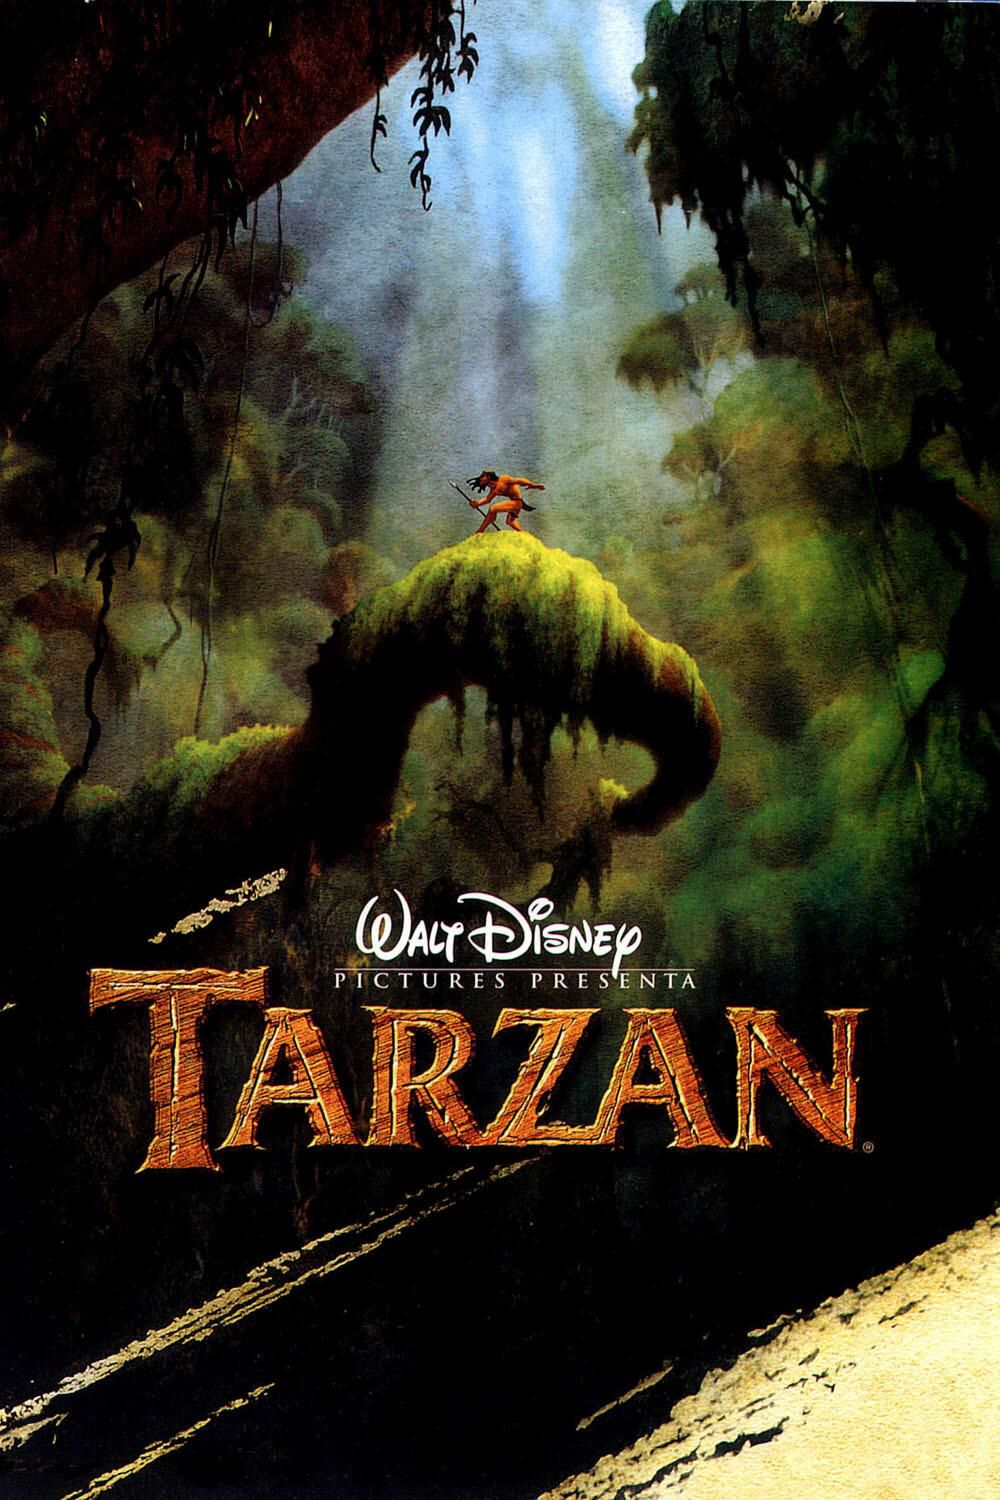 Original Tarzan Movie Poster 1999 | Tarzan movie, Disney posters ...